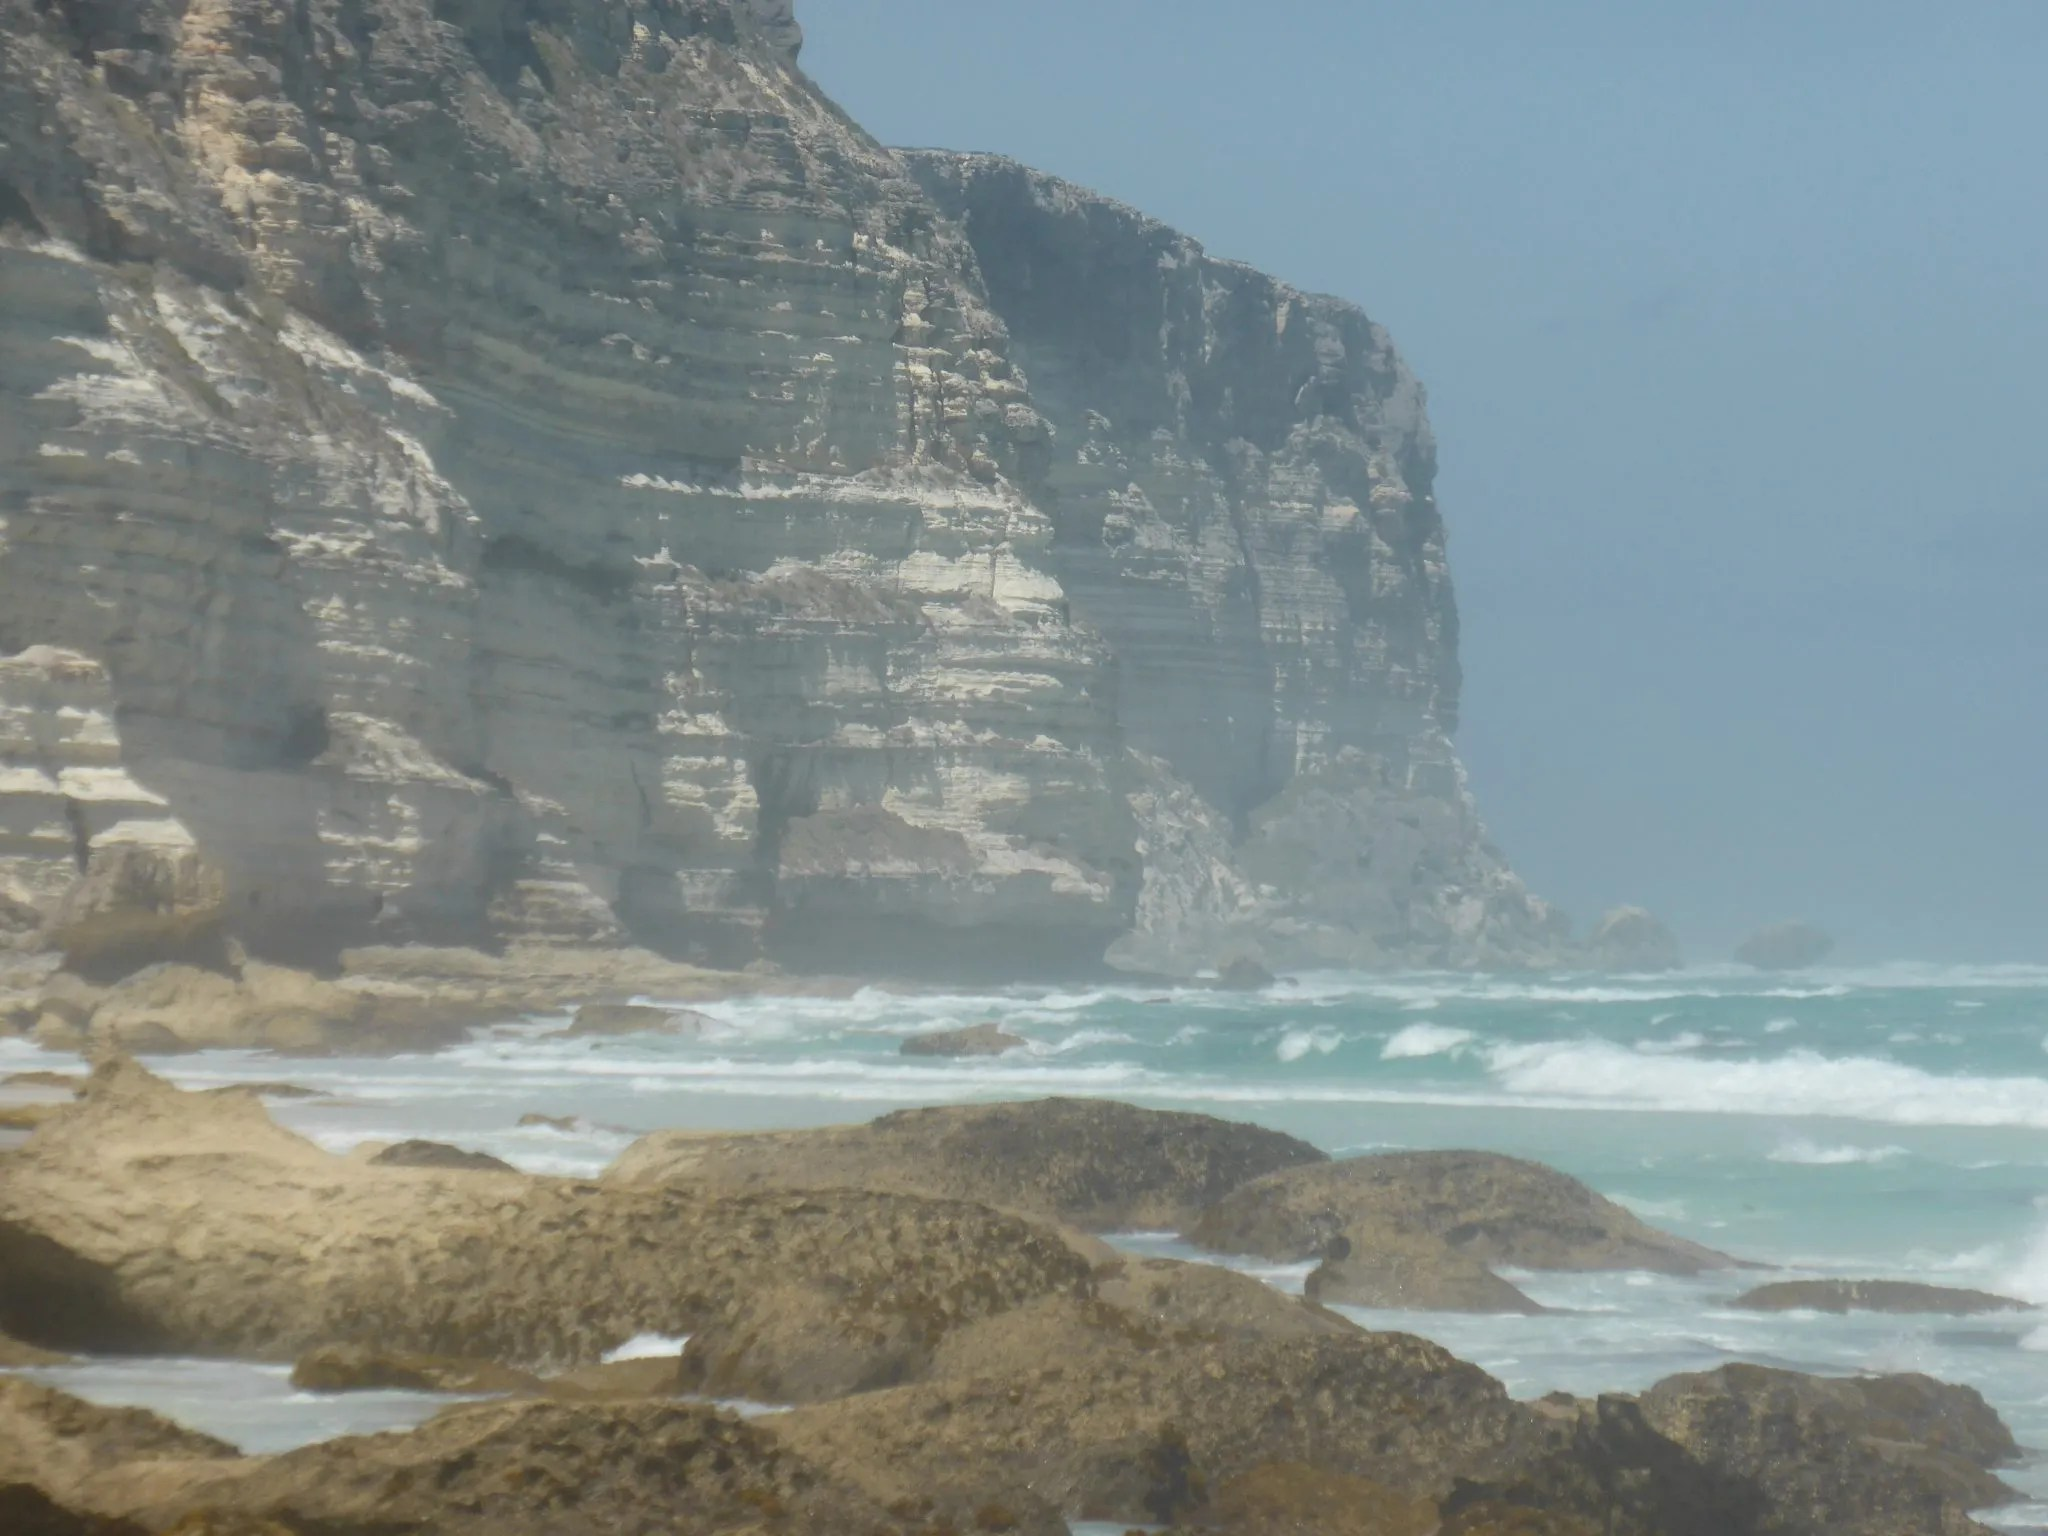 Baxter Cliffs - Great Australian Bight